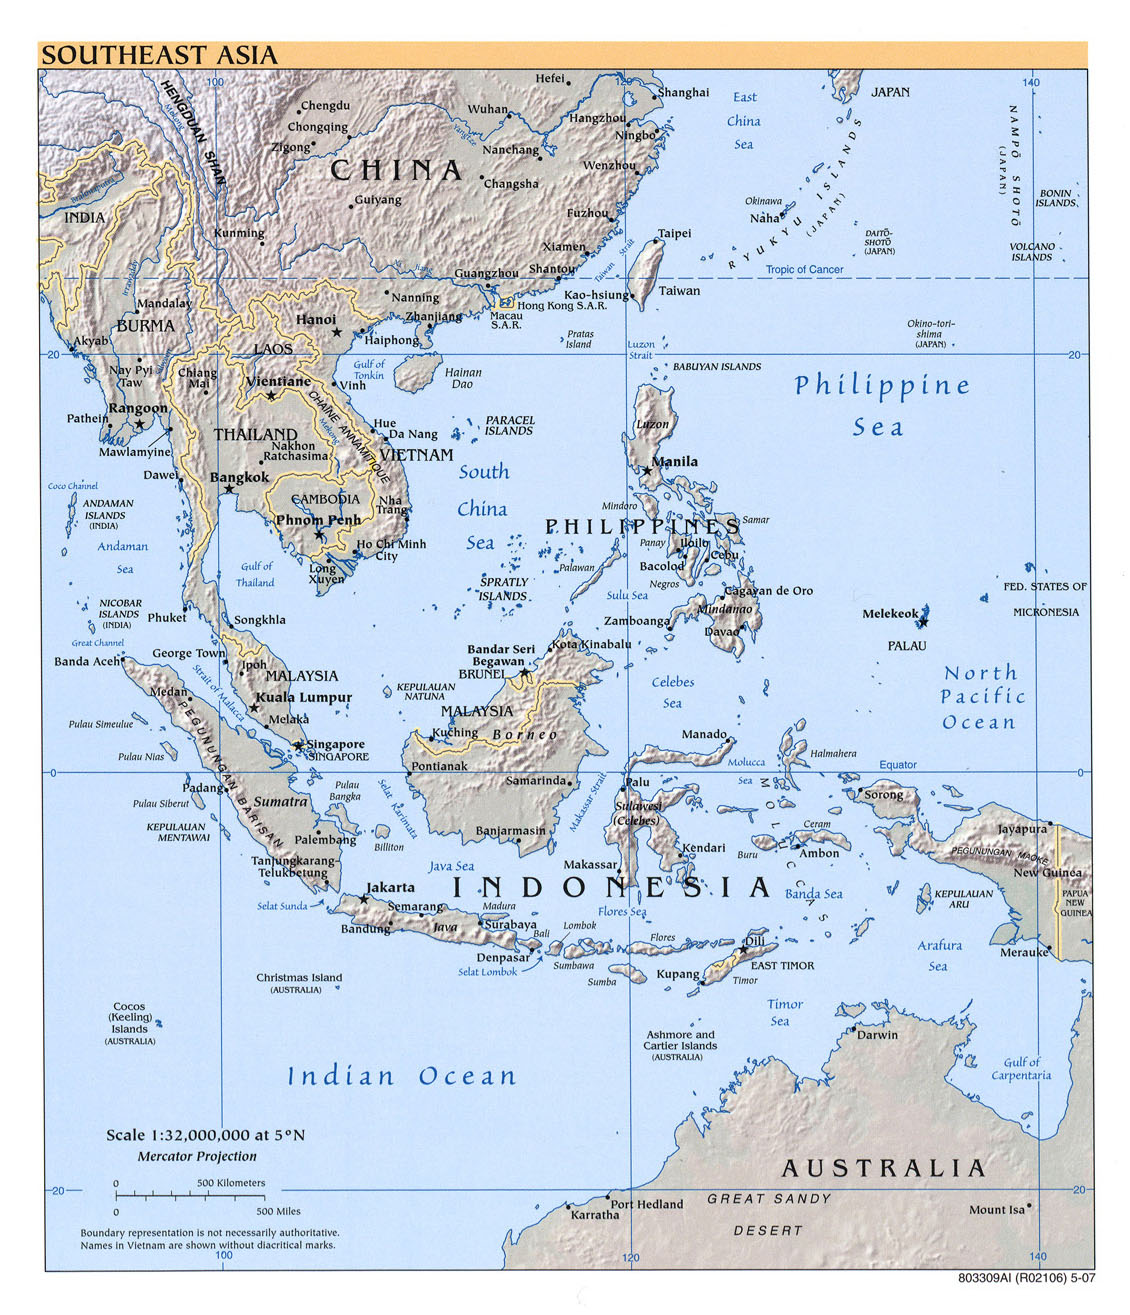 Map Of Monsoon Asia Countries.Maps Of Asia And Asia Countries Political Maps Administrative And